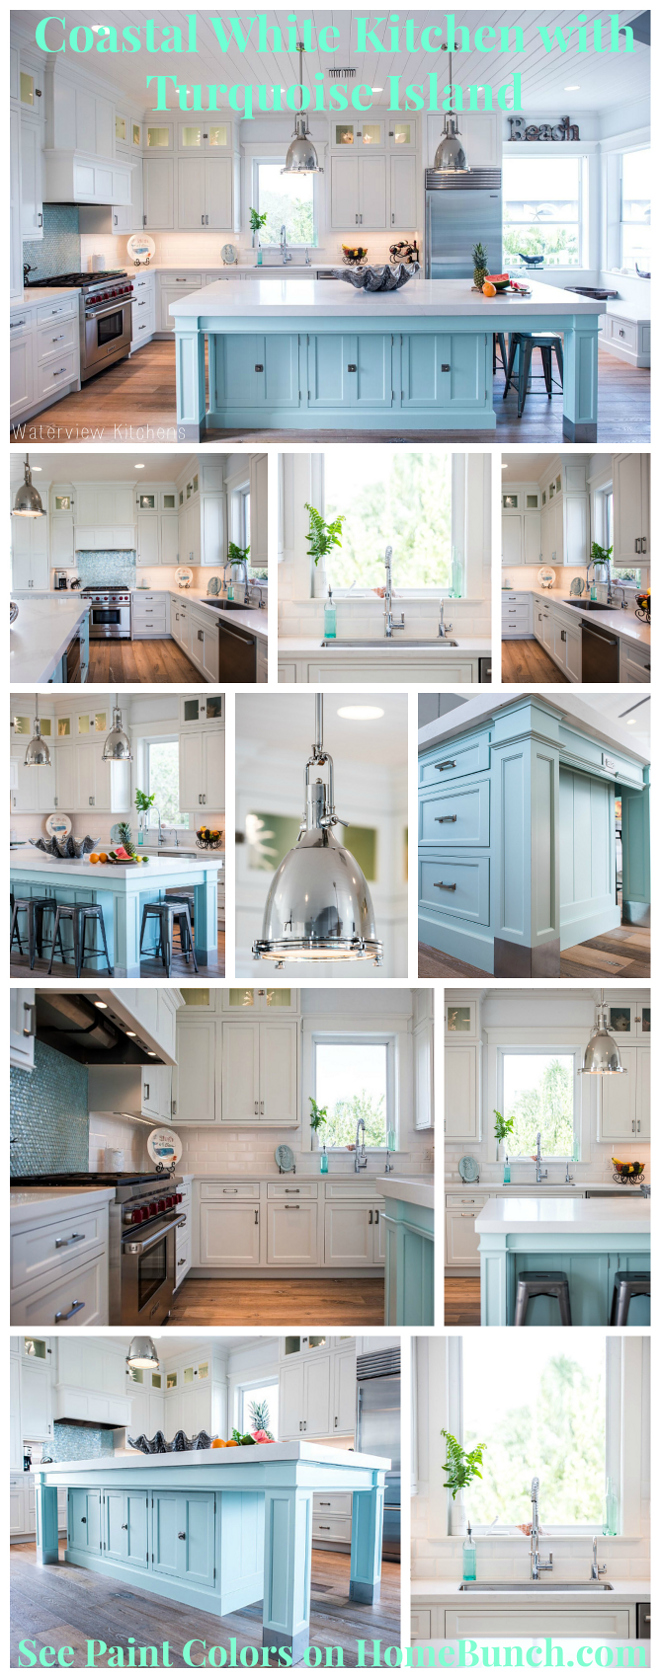 Coastal White Kitchen with Turquoise Island. Beautiful, cheerful and happy Coastal White Kitchen with Turquoise Island #CoastalKitchen #White itchen #TurquoiseIsland Via Home Bunch